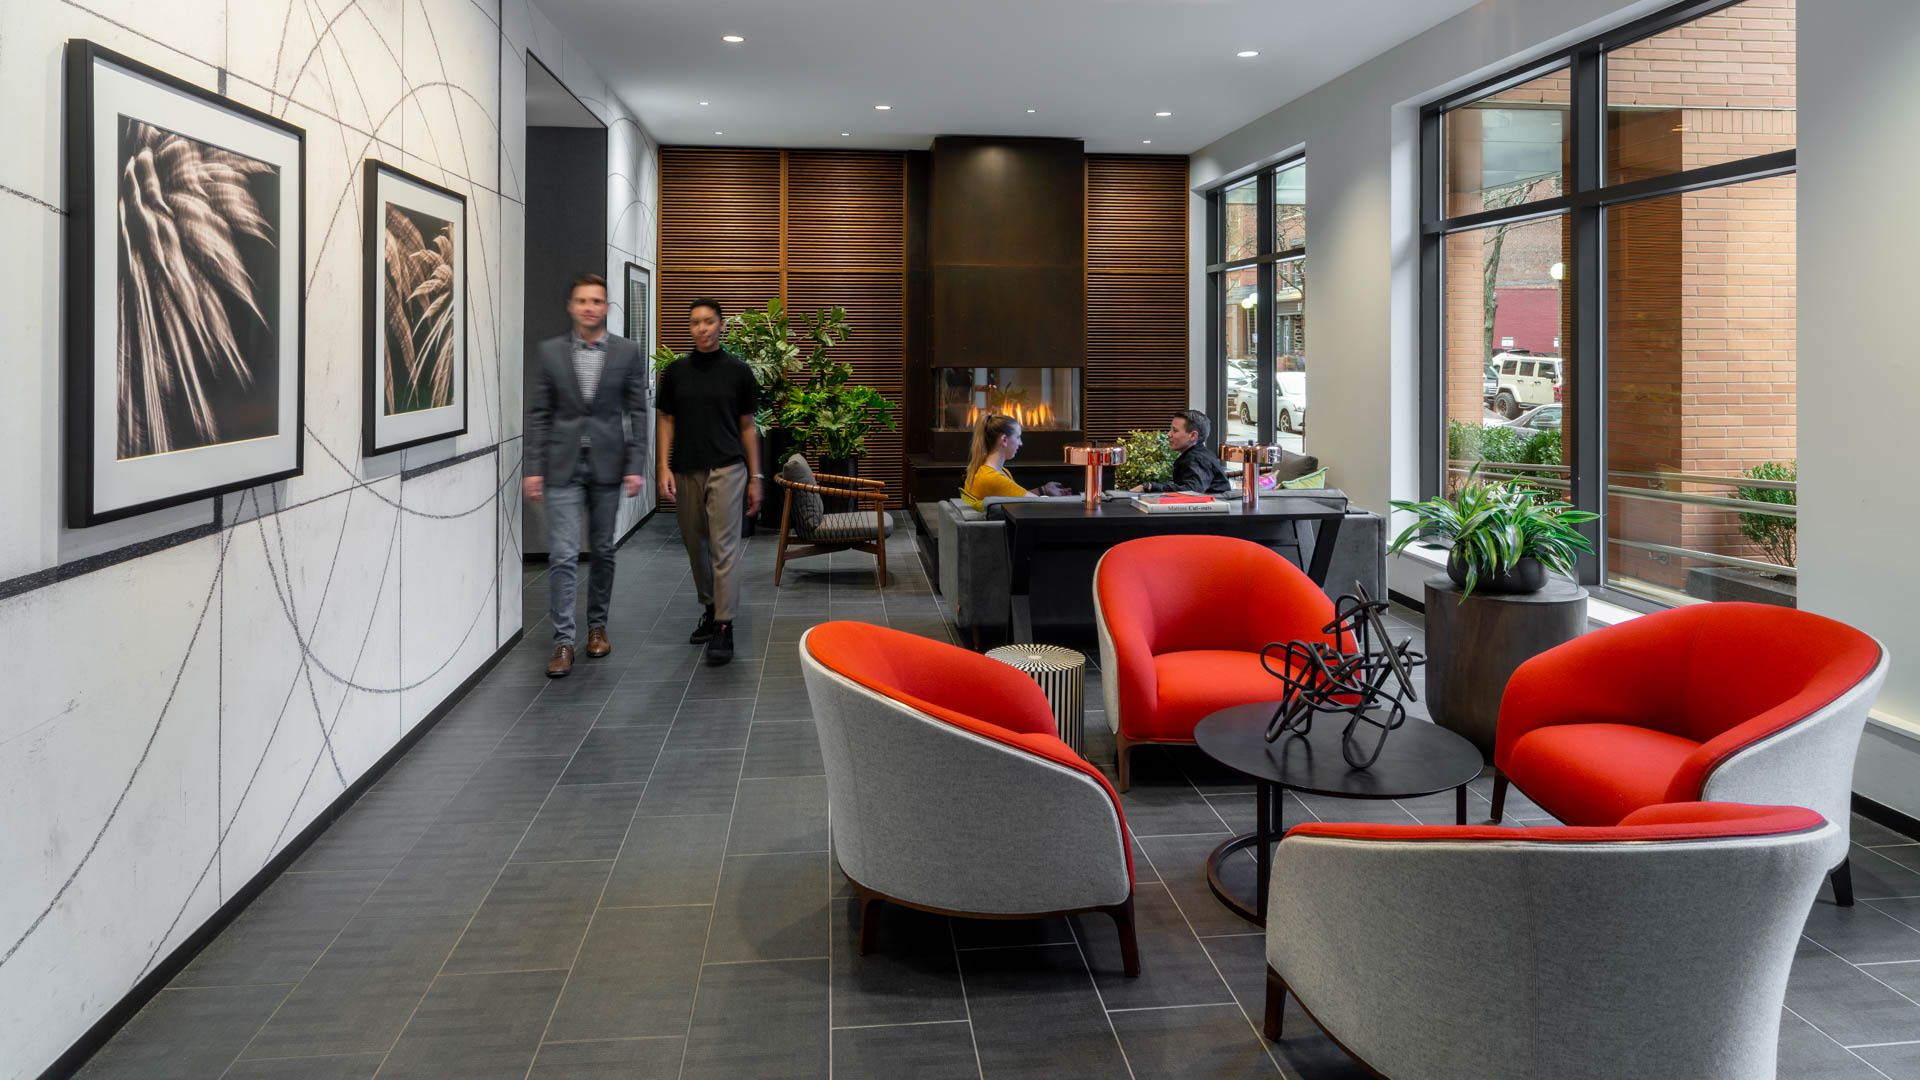 Avenir Apartments - Lobby and Lounge Space